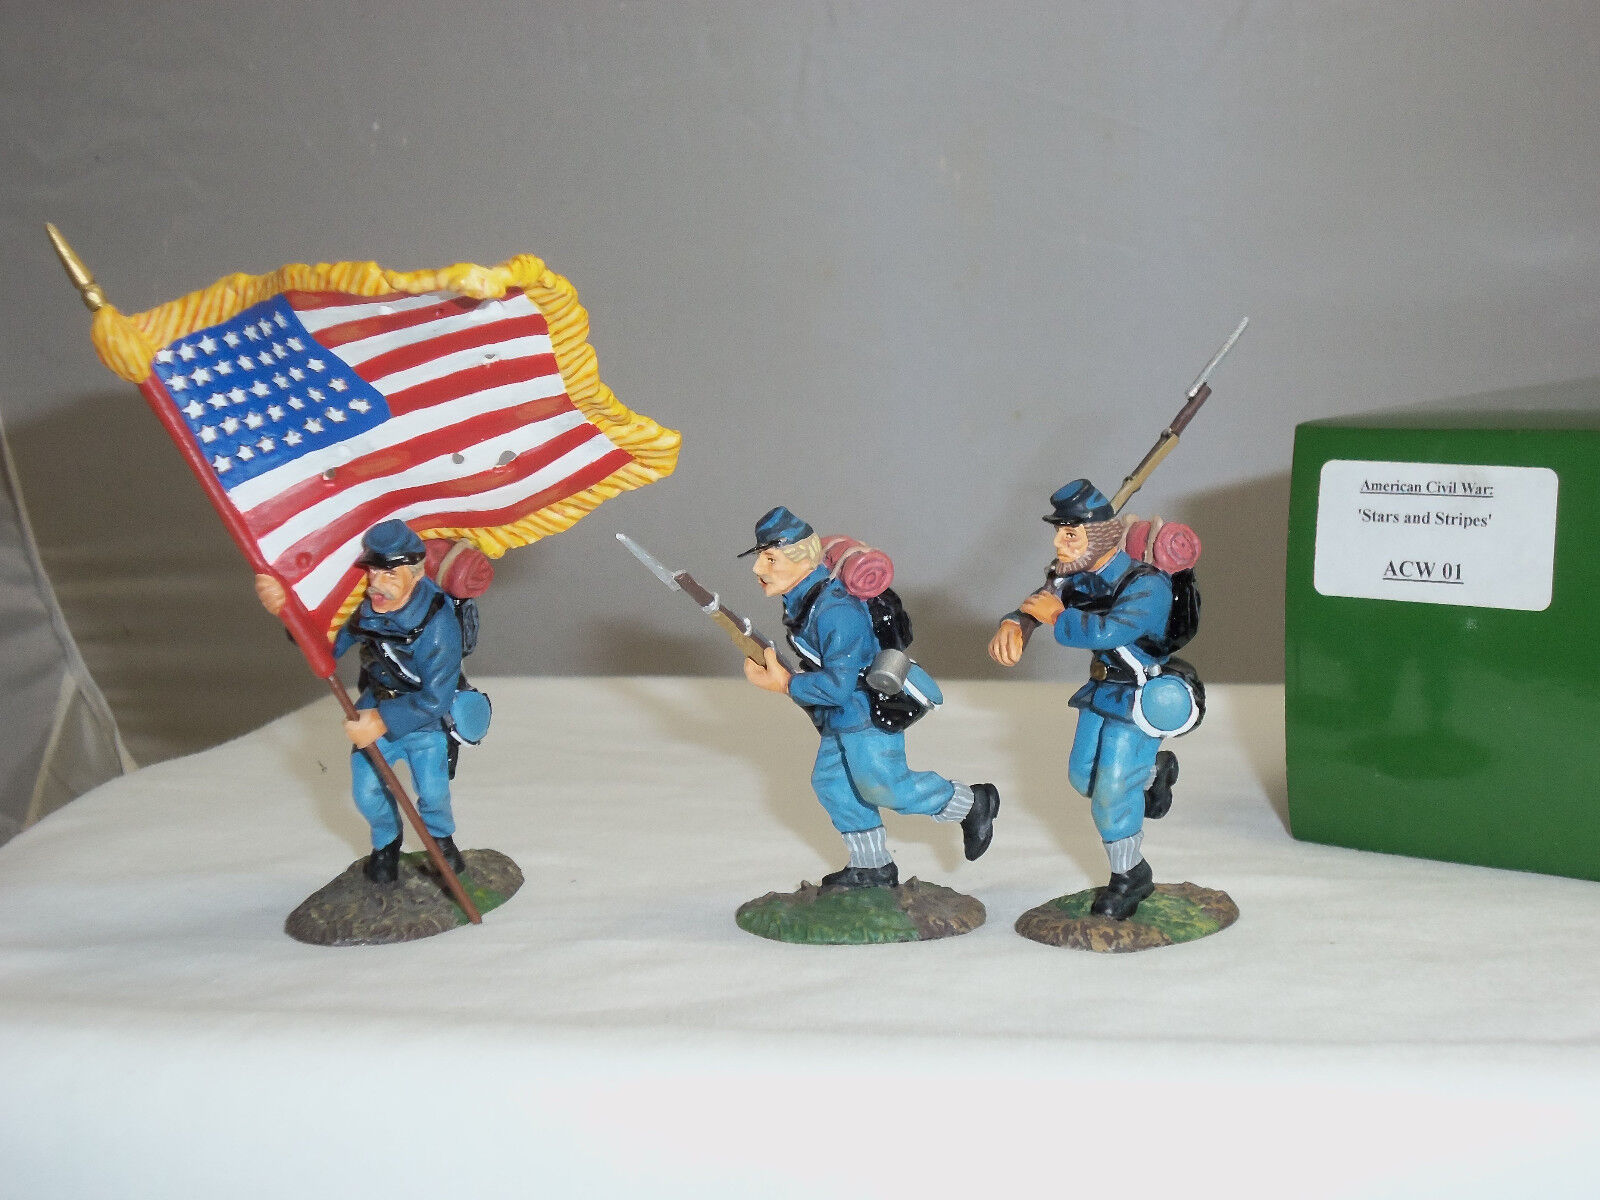 KING AND COUNTRY ACW01 STARS + STRIPES AMERICAN CIVIL WAR TOY SOLDIER FIGURE SET